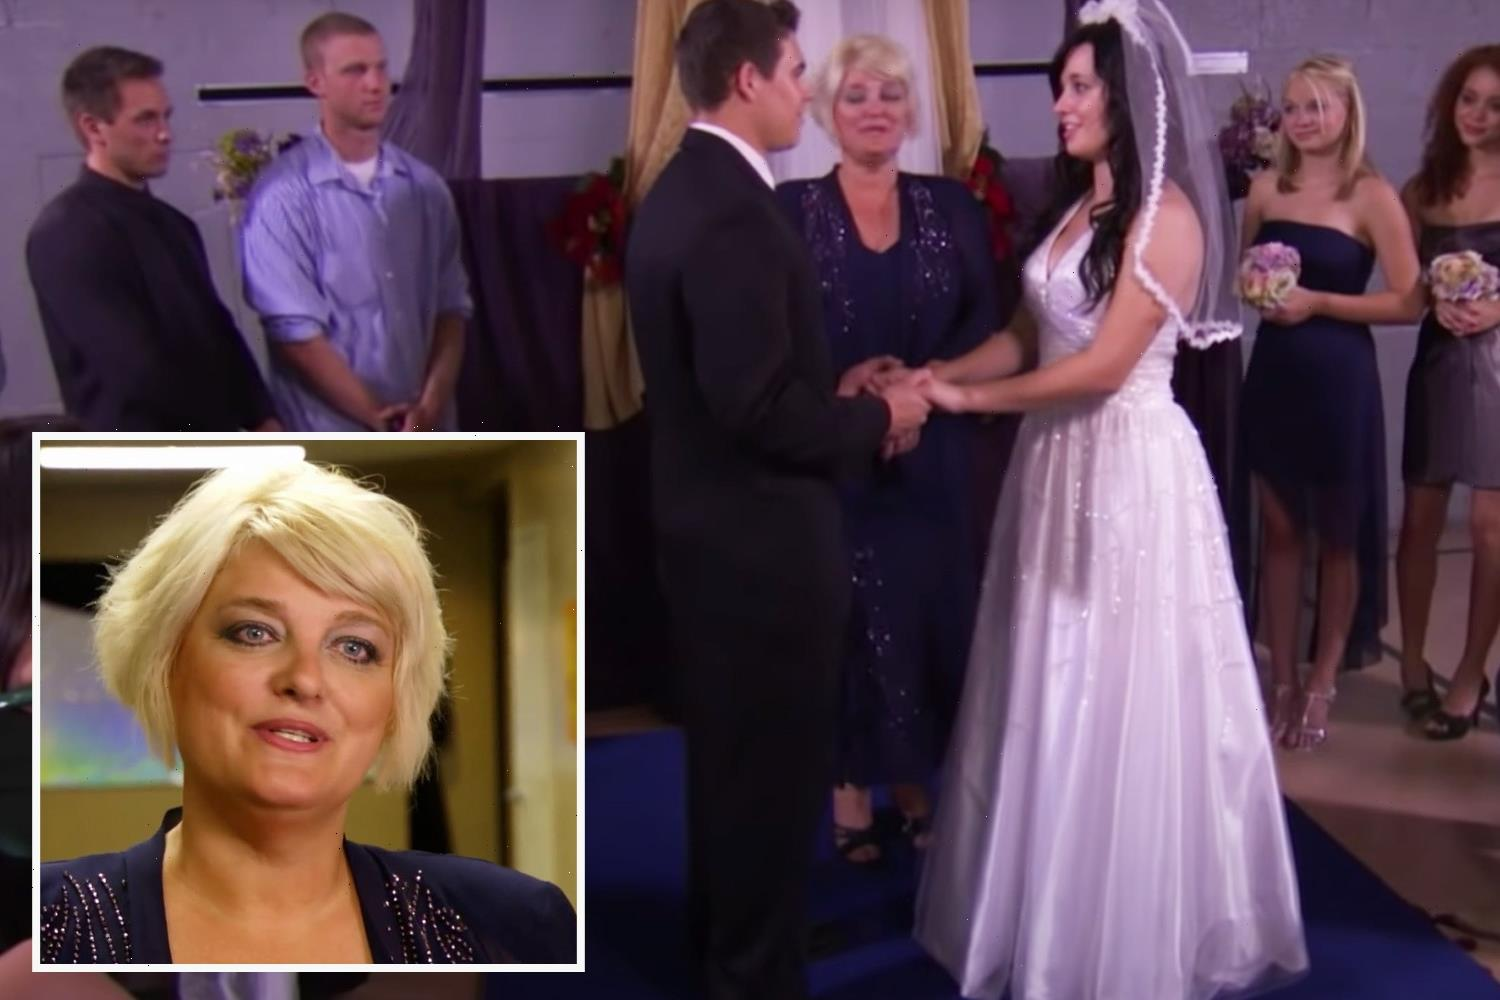 I'm the world's cheapest mum, I threw my daughter's wedding for £500 and made her wear second-hand lingerie for 50p